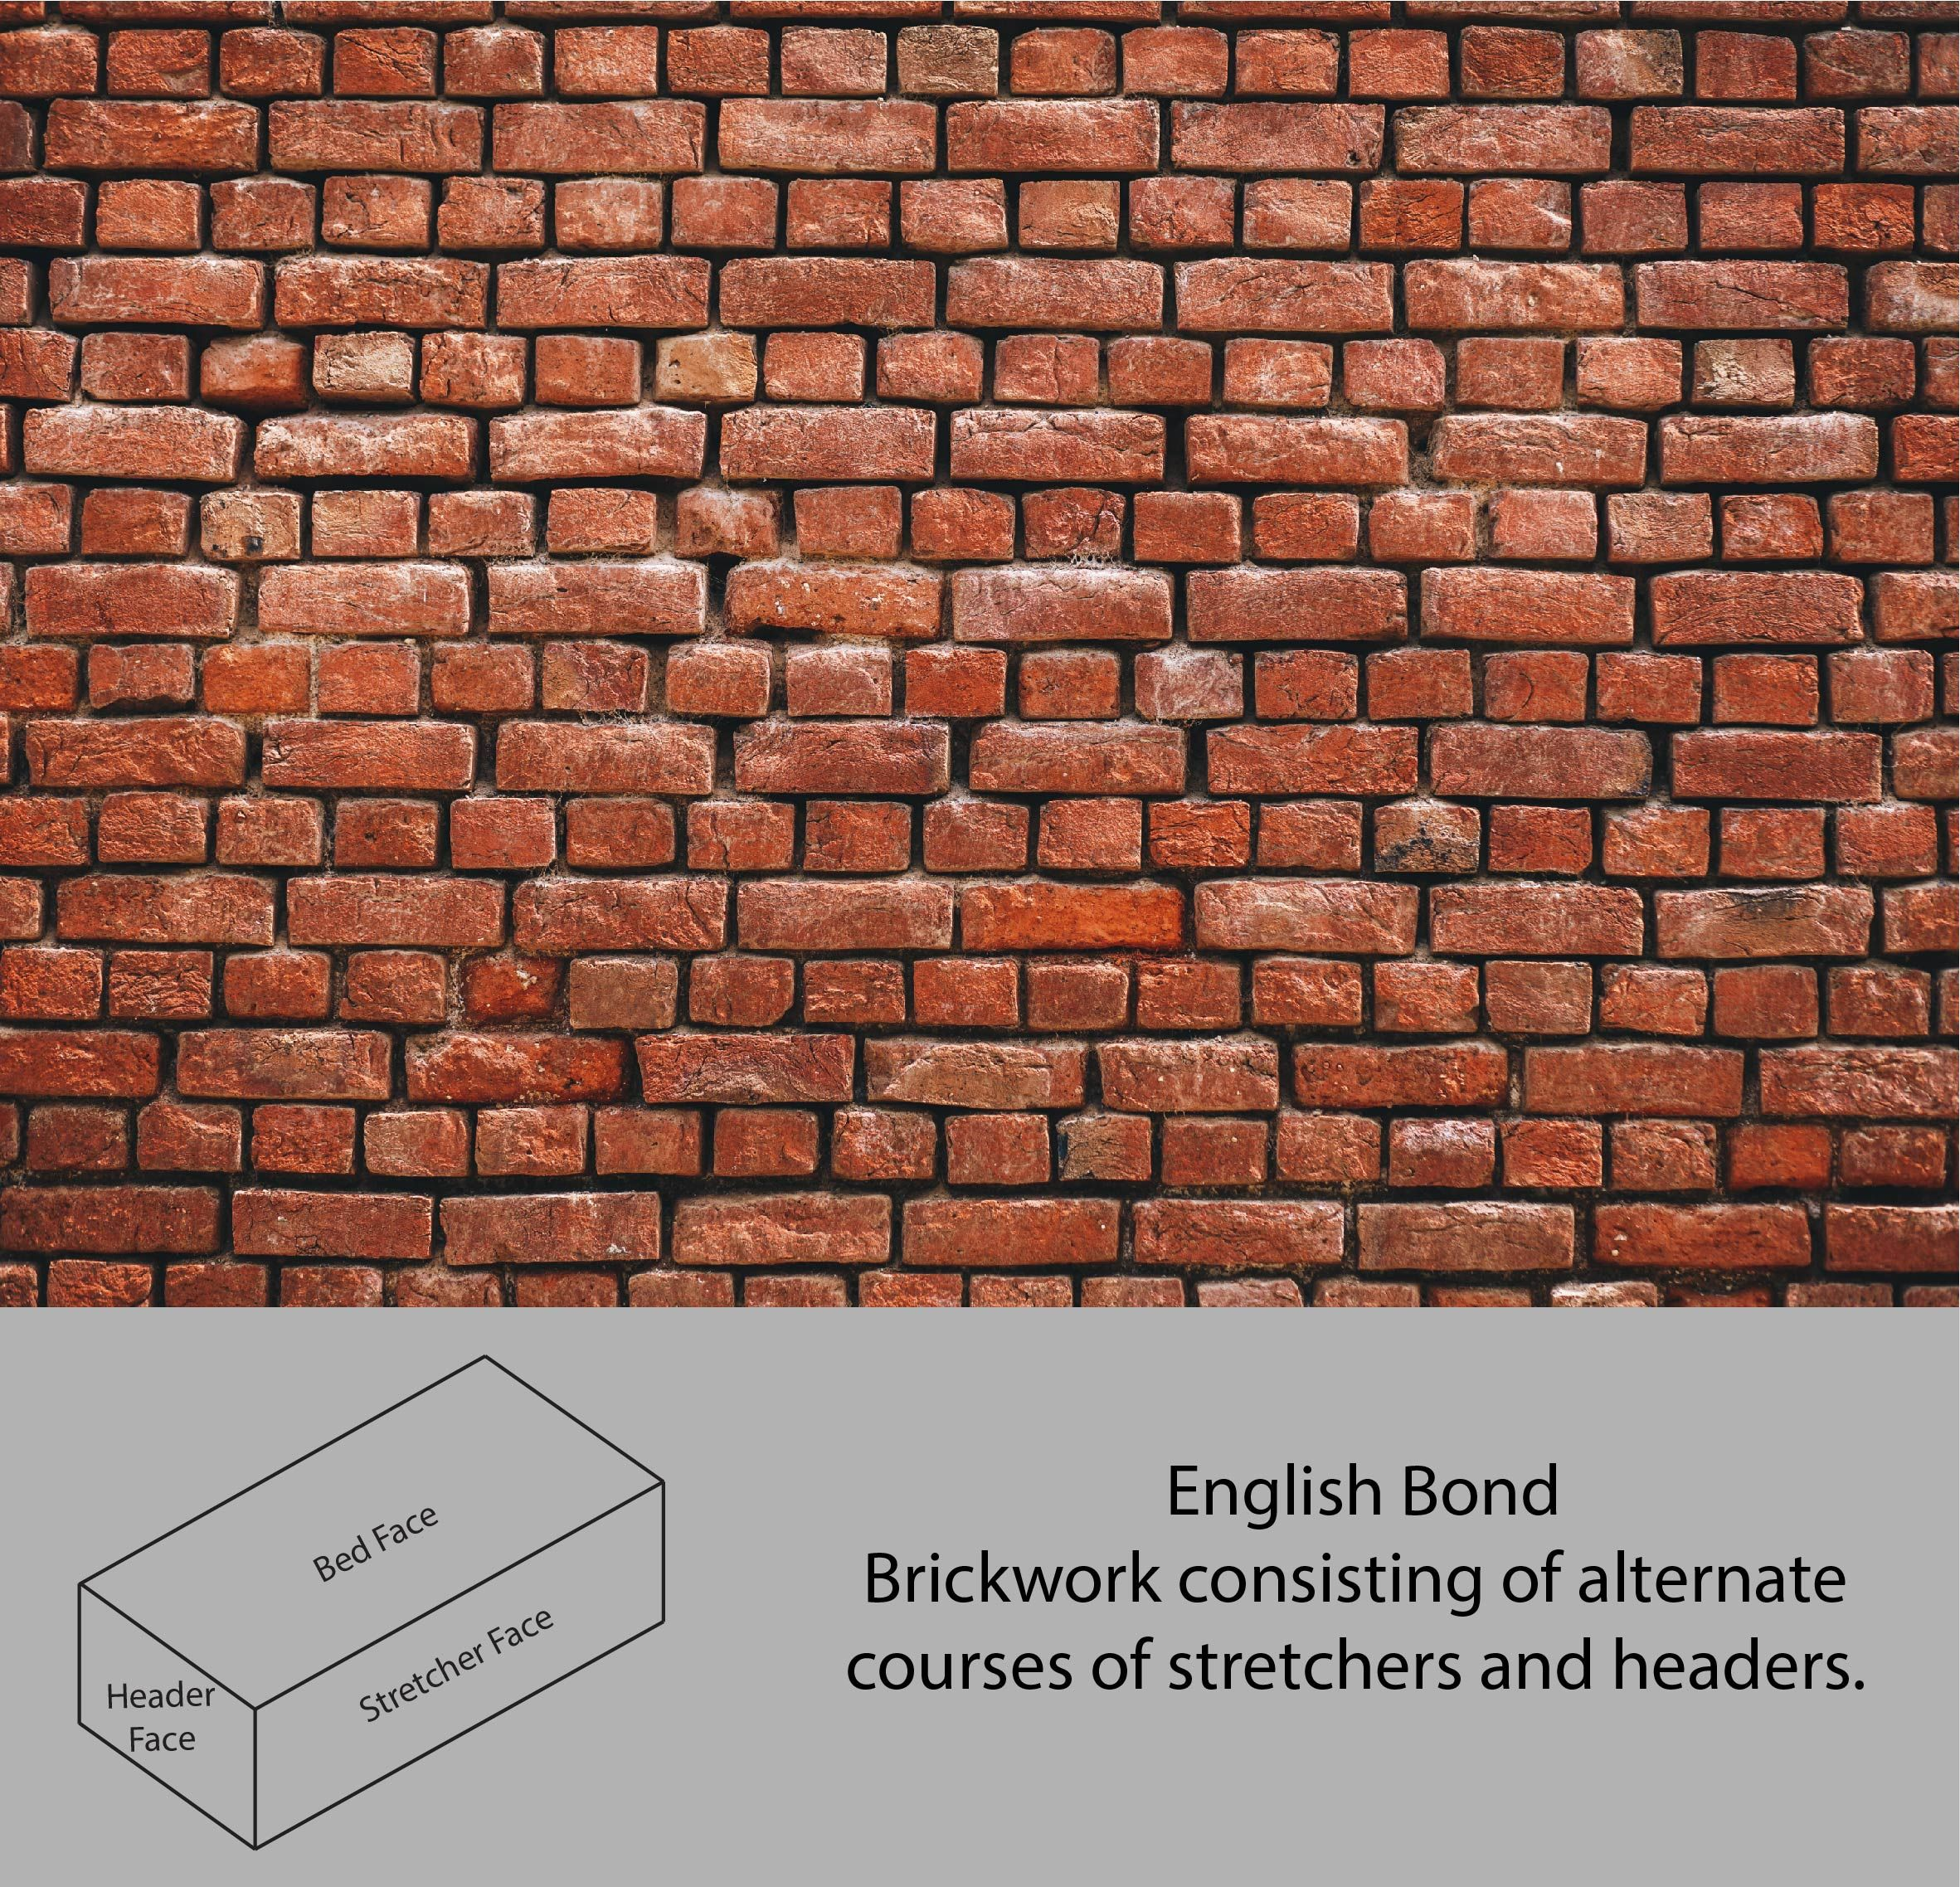 An Older Style Brick Laying Pattern That Is Seen In Older